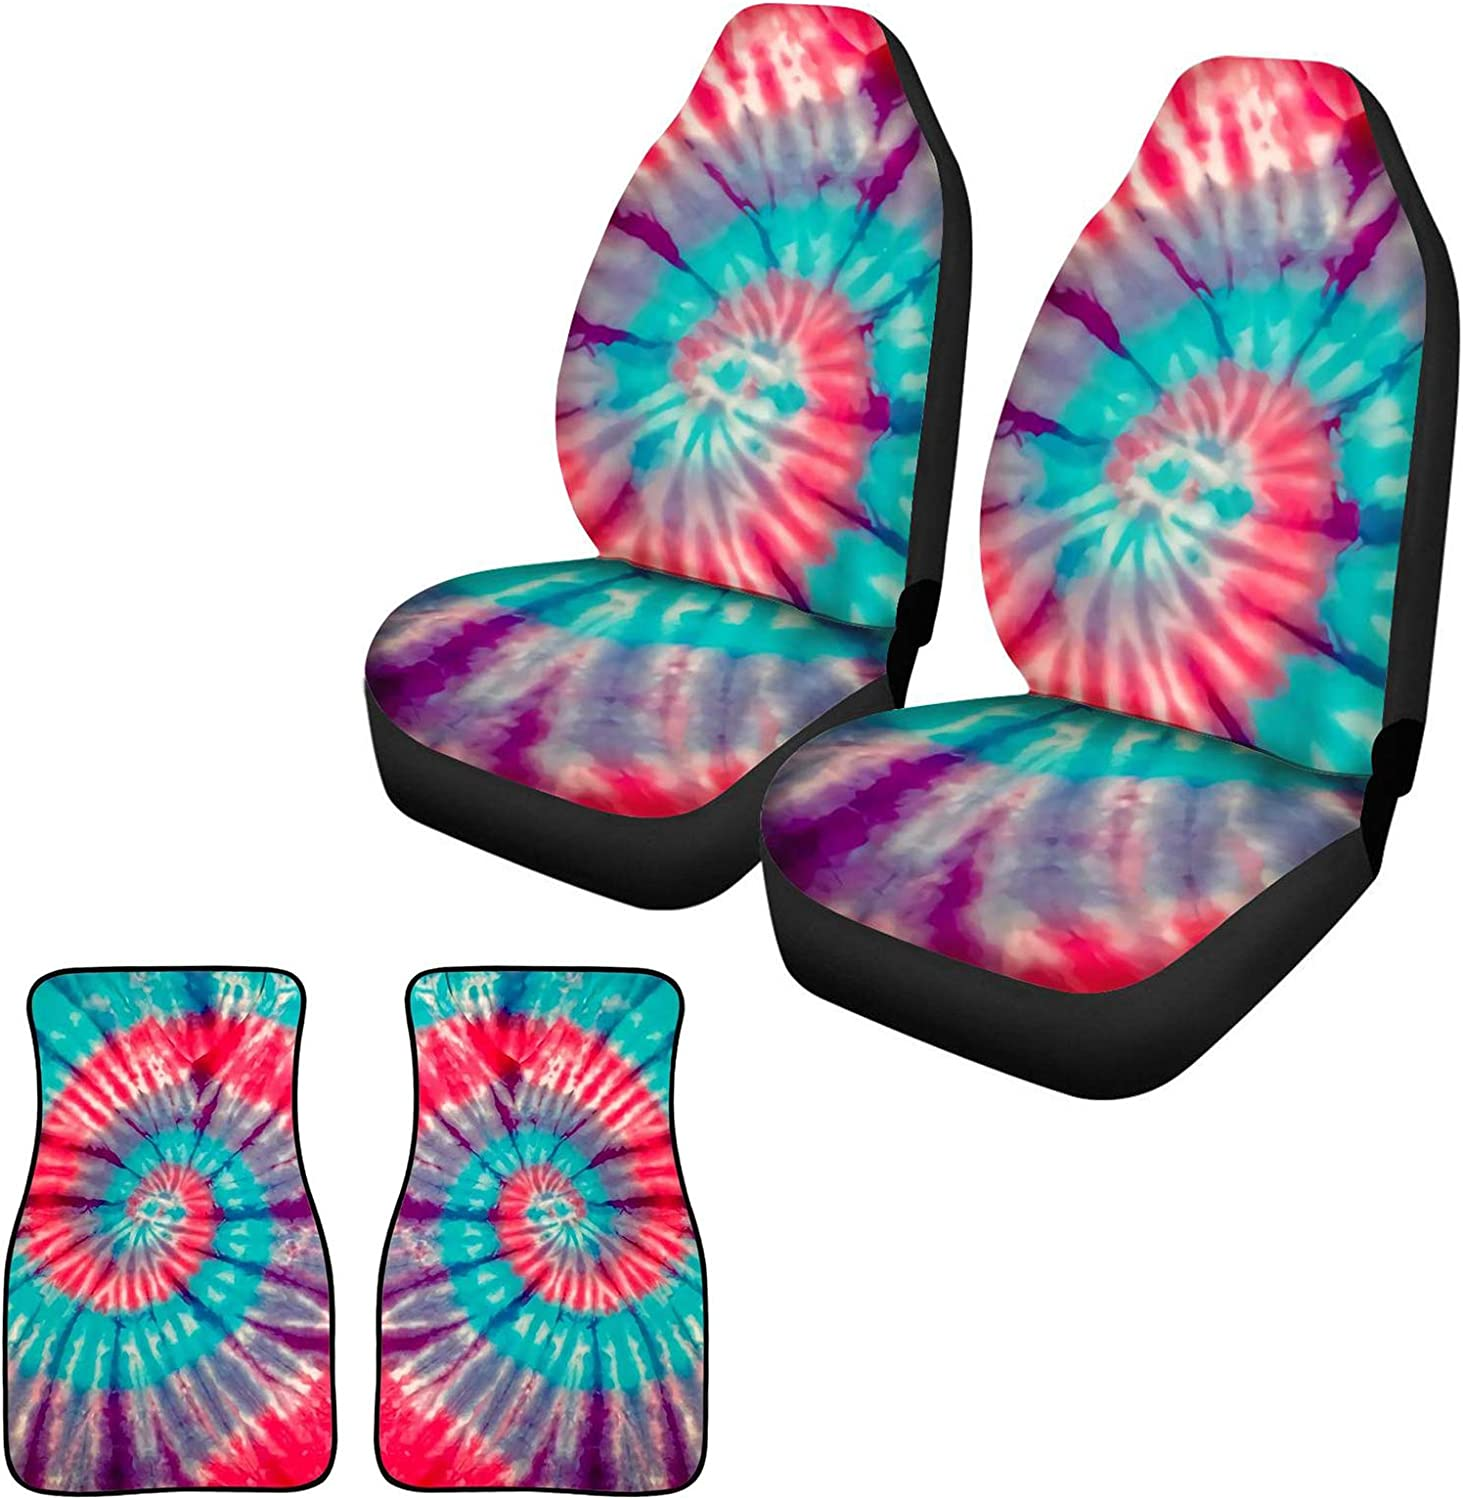 TOADDMOS Personalized Sunflower Butterflies Navy Car Seat Covers and Car Floor Mats Set of 2 Front Floor Carpet Universal Auto Interior Accessories Decor for Women Girls